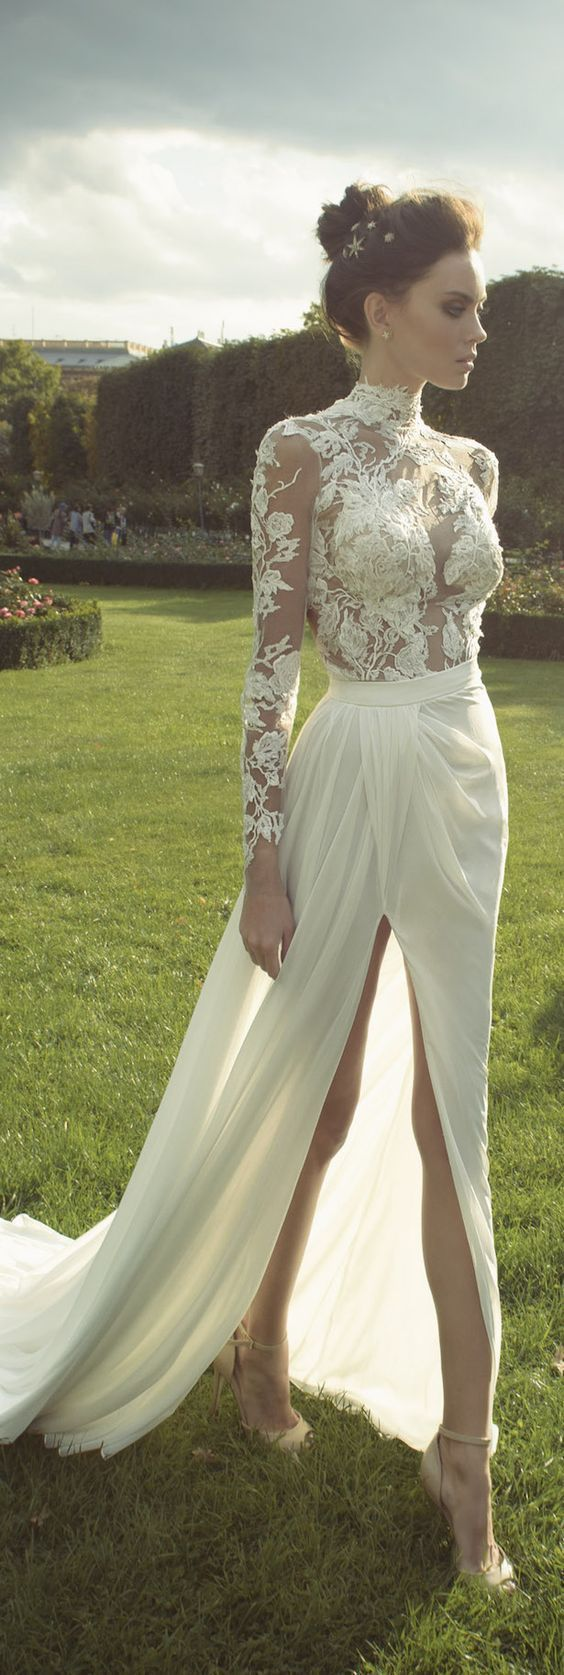 best wedding images on pinterest gown wedding groom attire and